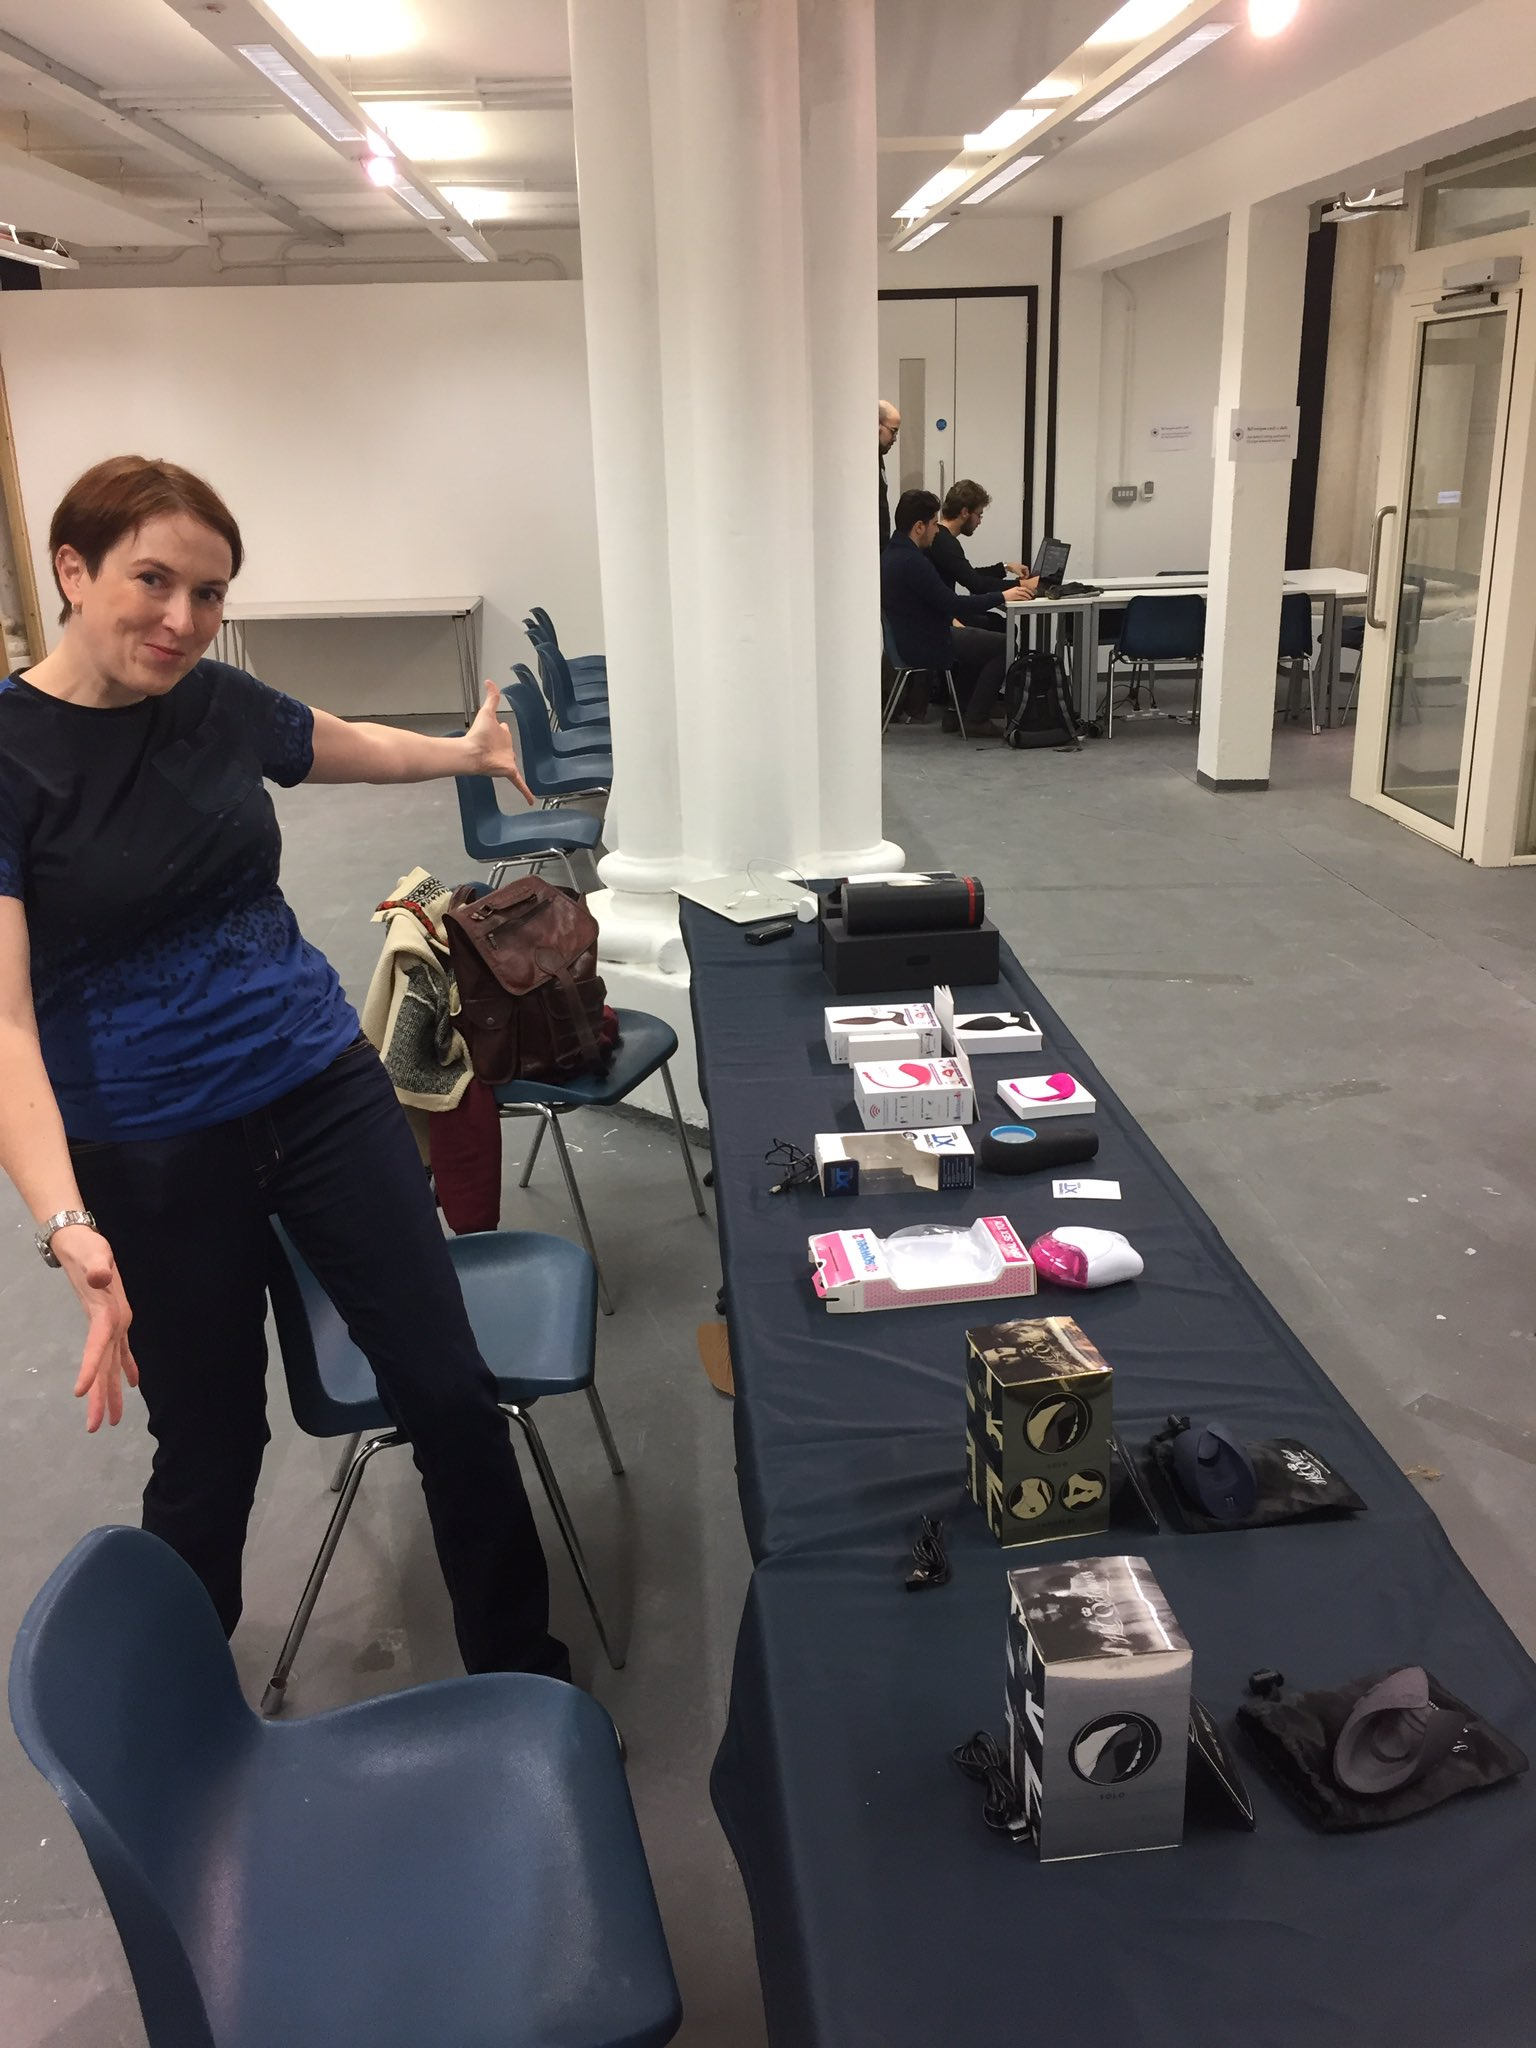 Our resident #sexpert @drkatedevlin with our... hardware #sextechhack https://t.co/bhdkxu0M75